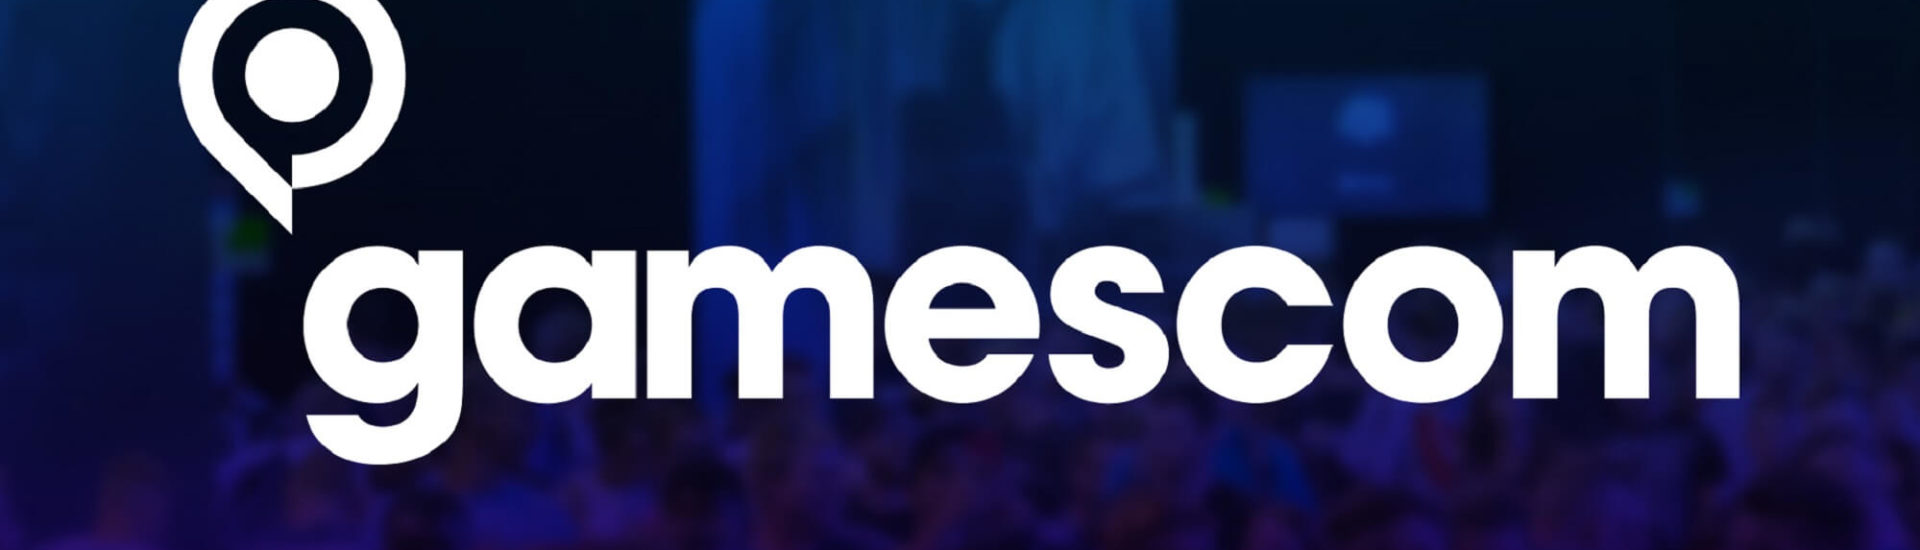 gamescom 2020: Digitale Messe startet